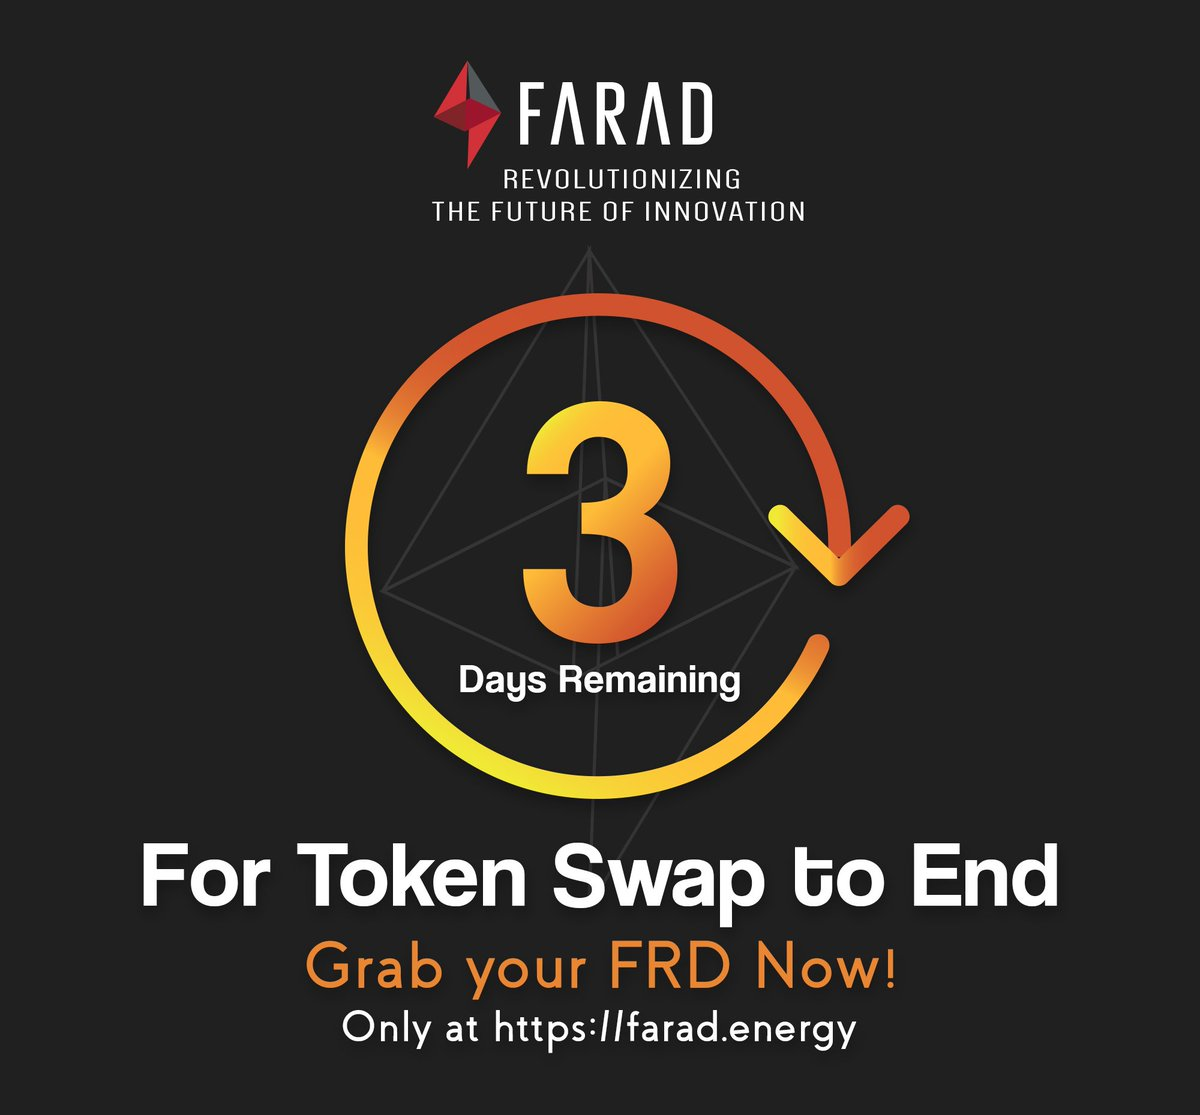 how to buy farad cryptocurrency